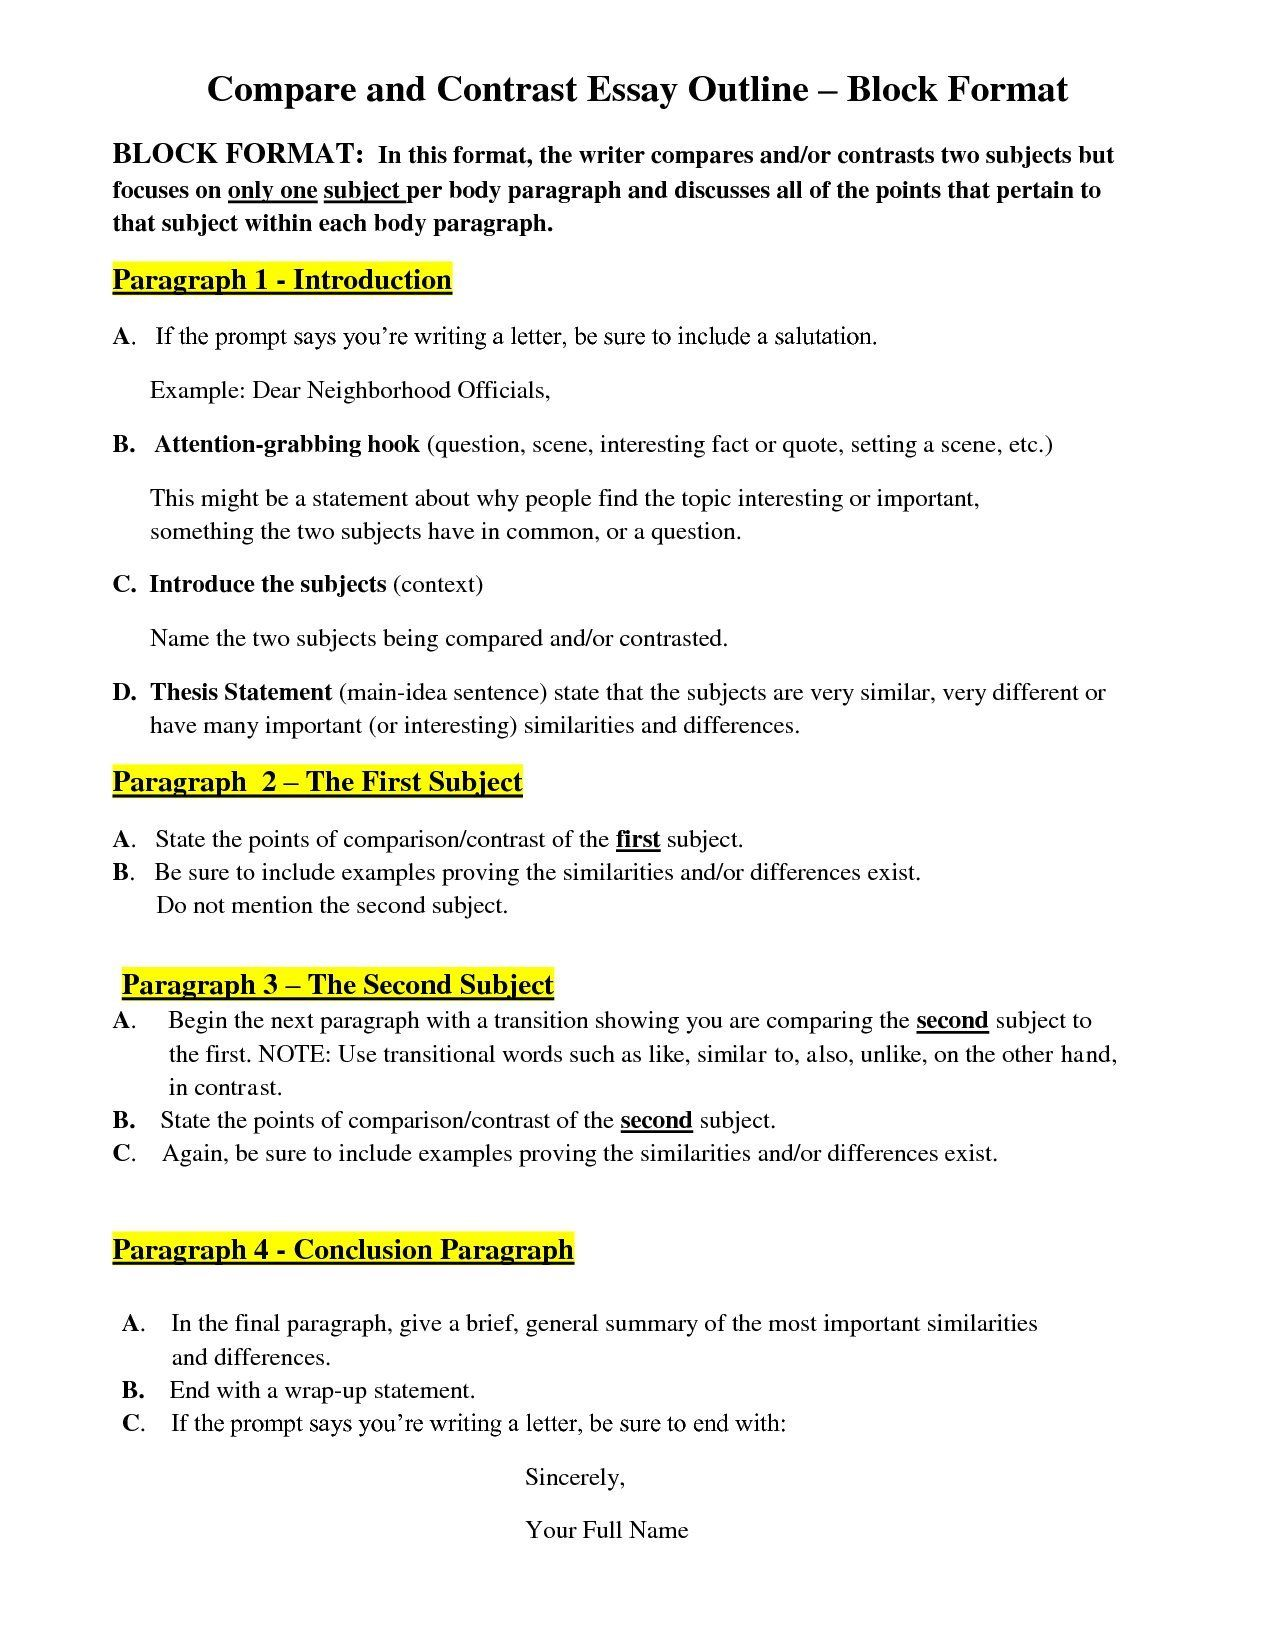 007 Compare And Contrast Essay Frightening Topics For College Students Rubric 4th Grade Ideas 7th Full